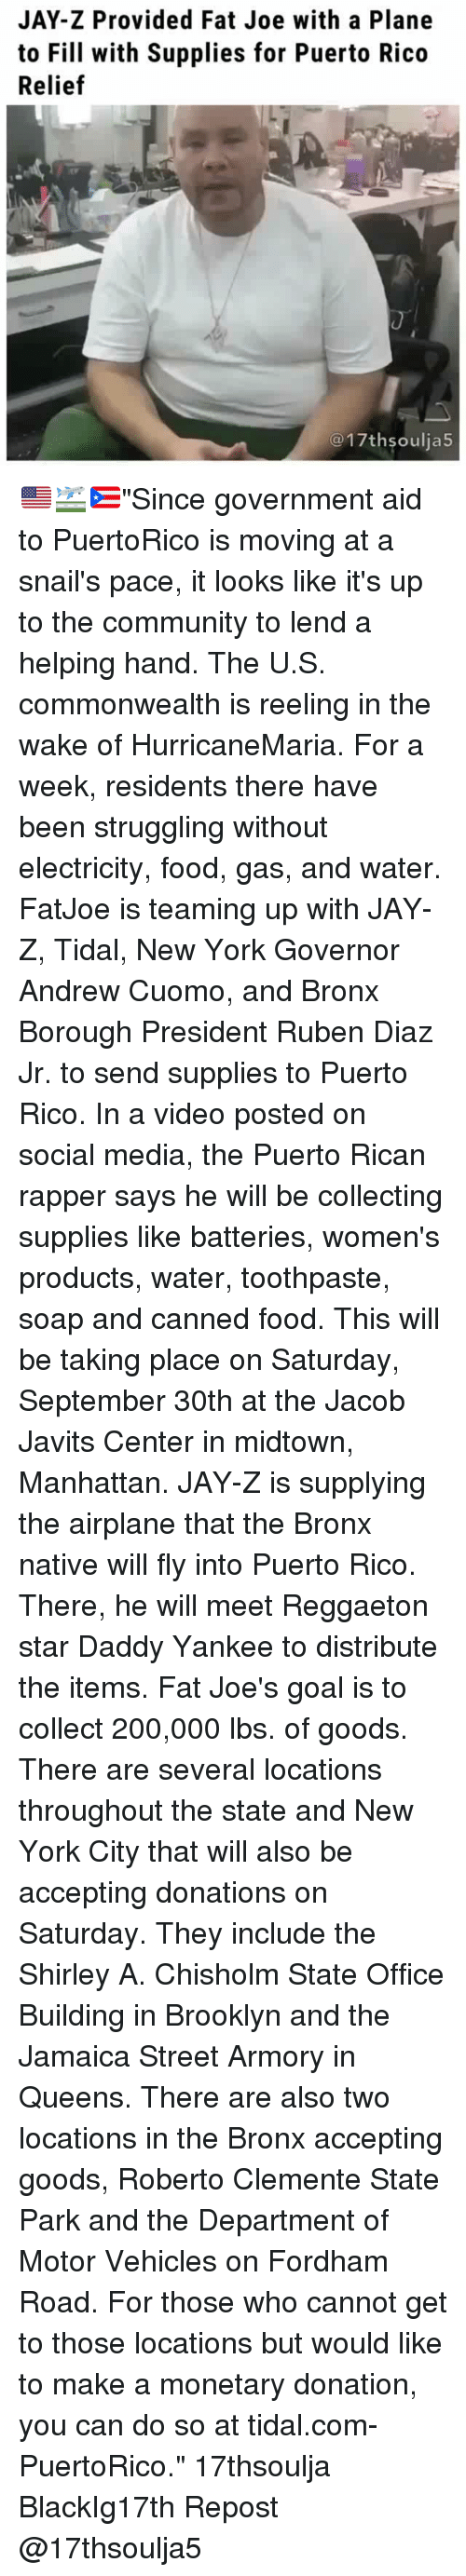 "Bailey Jay, Community, and Fat Joe: JAY-Z Provided Fat Joe with a Plane  to Fill with Supplies for Puerto Rico  Relief  @17thsoulja5 🇺🇸🛫🇵🇷""Since government aid to PuertoRico is moving at a snail's pace, it looks like it's up to the community to lend a helping hand. The U.S. commonwealth is reeling in the wake of HurricaneMaria. For a week, residents there have been struggling without electricity, food, gas, and water. FatJoe is teaming up with JAY-Z, Tidal, New York Governor Andrew Cuomo, and Bronx Borough President Ruben Diaz Jr. to send supplies to Puerto Rico. In a video posted on social media, the Puerto Rican rapper says he will be collecting supplies like batteries, women's products, water, toothpaste, soap and canned food. This will be taking place on Saturday, September 30th at the Jacob Javits Center in midtown, Manhattan. JAY-Z is supplying the airplane that the Bronx native will fly into Puerto Rico. There, he will meet Reggaeton star Daddy Yankee to distribute the items. Fat Joe's goal is to collect 200,000 lbs. of goods. There are several locations throughout the state and New York City that will also be accepting donations on Saturday. They include the Shirley A. Chisholm State Office Building in Brooklyn and the Jamaica Street Armory in Queens. There are also two locations in the Bronx accepting goods, Roberto Clemente State Park and the Department of Motor Vehicles on Fordham Road. For those who cannot get to those locations but would like to make a monetary donation, you can do so at tidal.com-PuertoRico."" 17thsoulja BlackIg17th Repost @17thsoulja5"